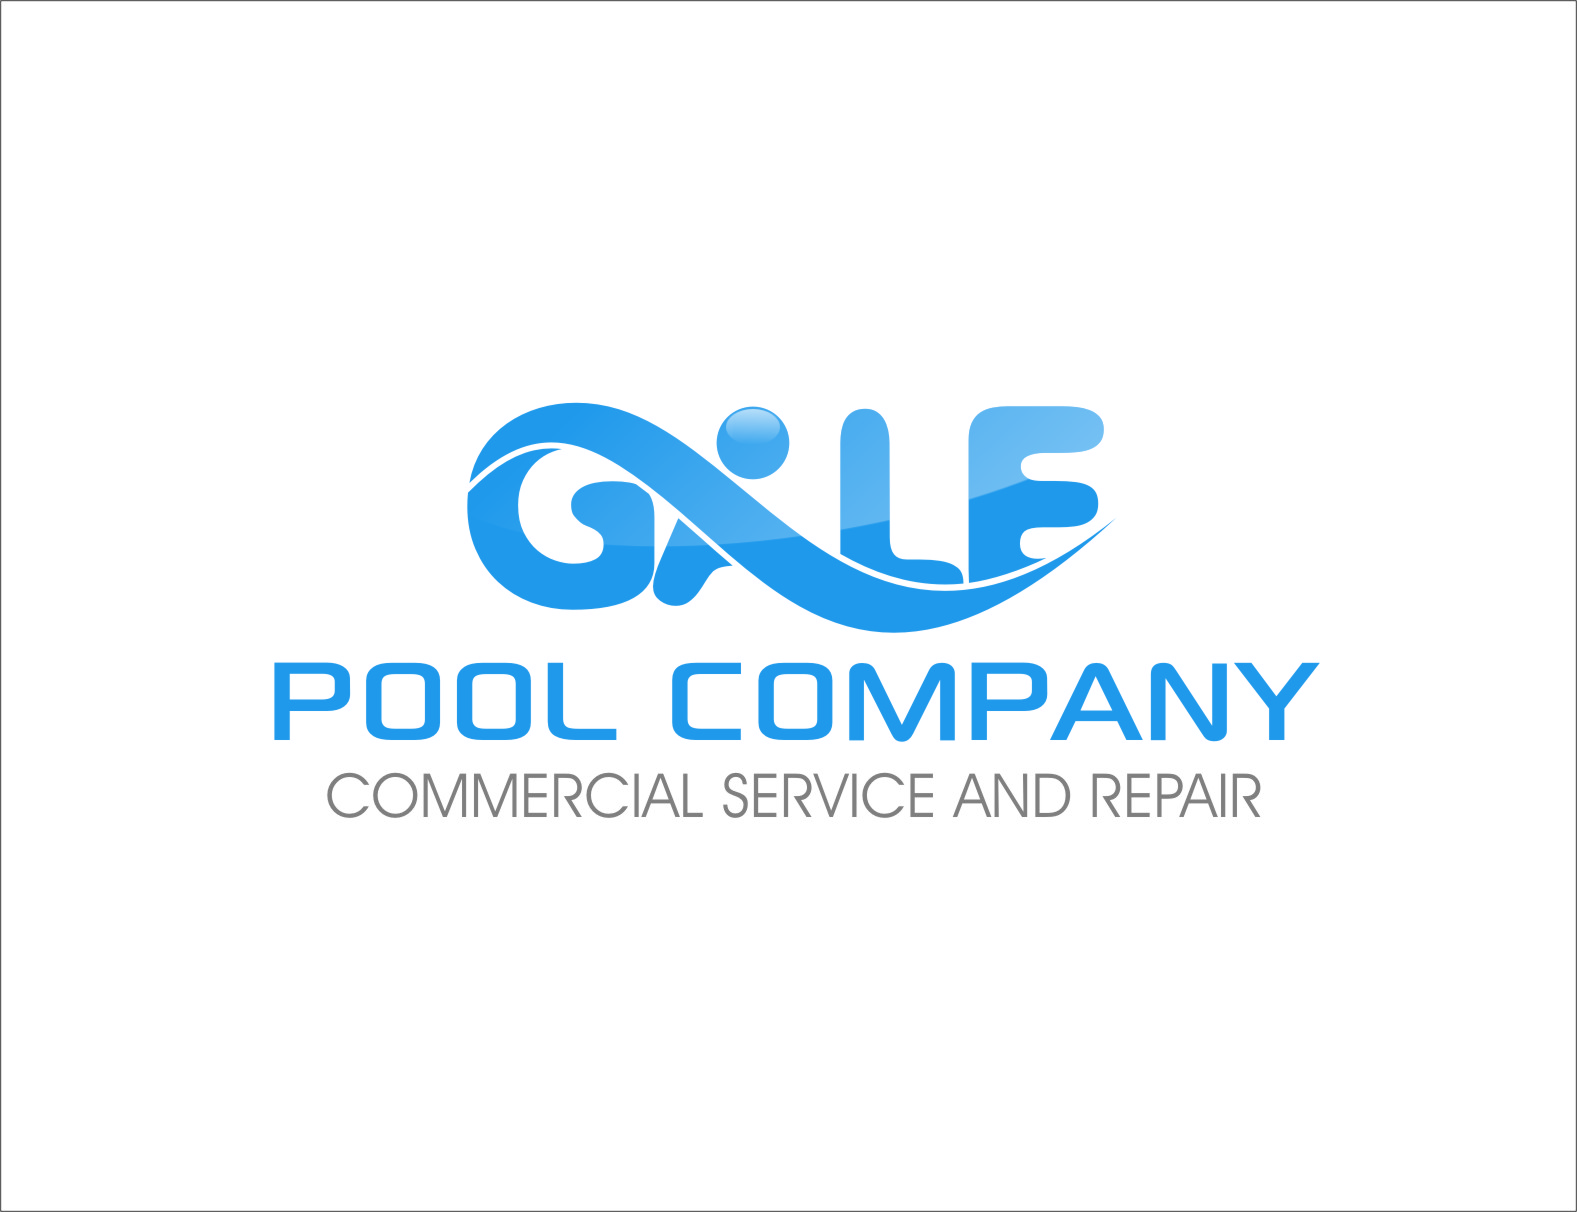 Logo Design by Ngepet_art - Entry No. 58 in the Logo Design Contest Imaginative Logo Design for Gale Pool Company.